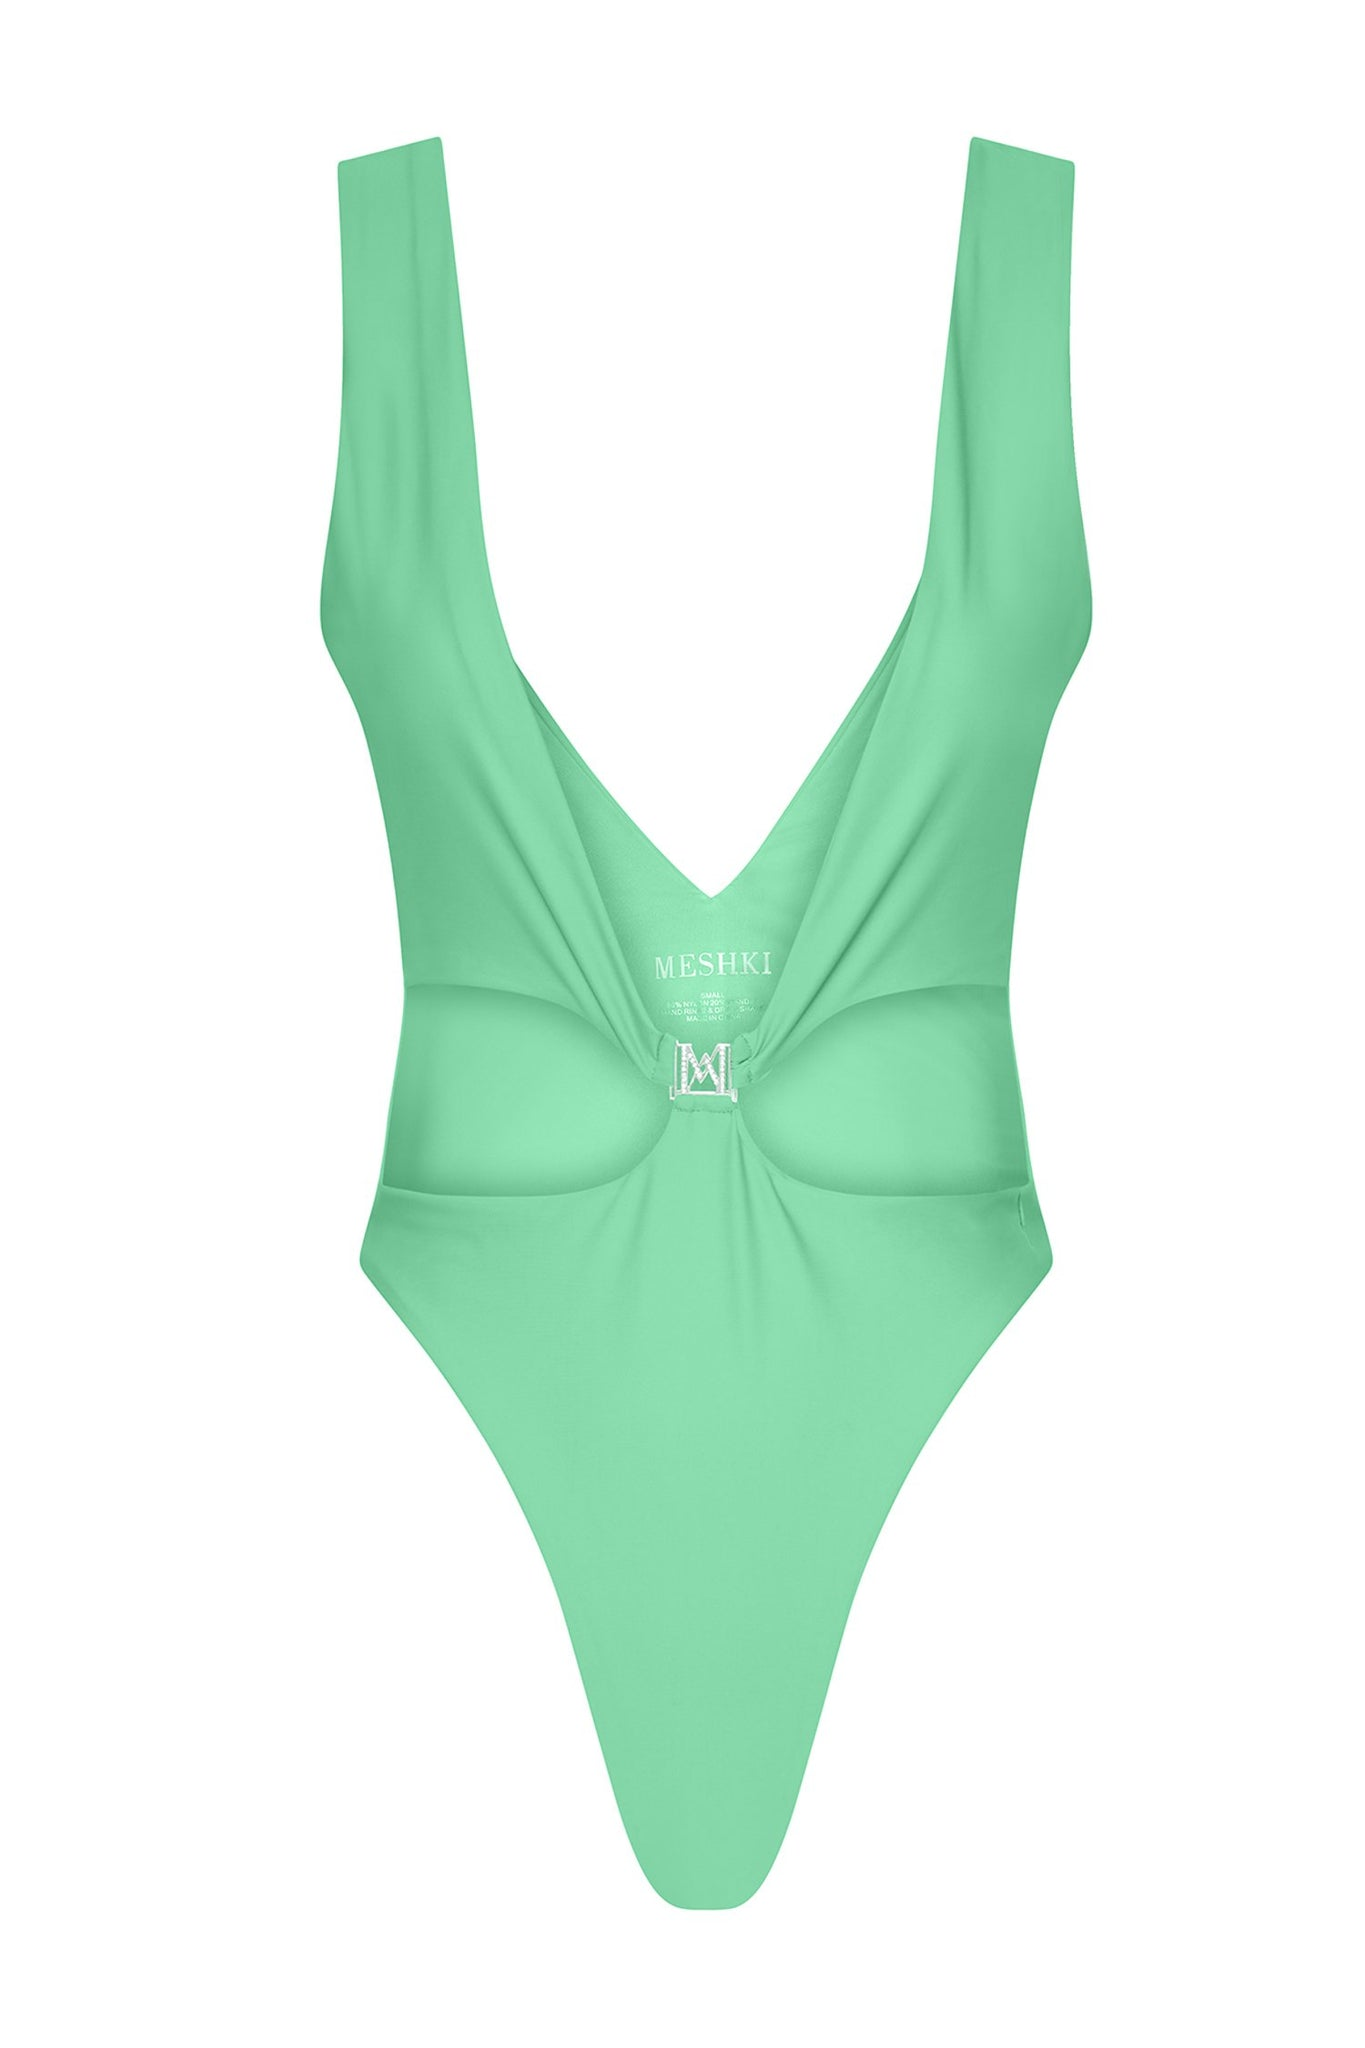 Rikki Low Cut One Piece - Lime Green - MESHKI